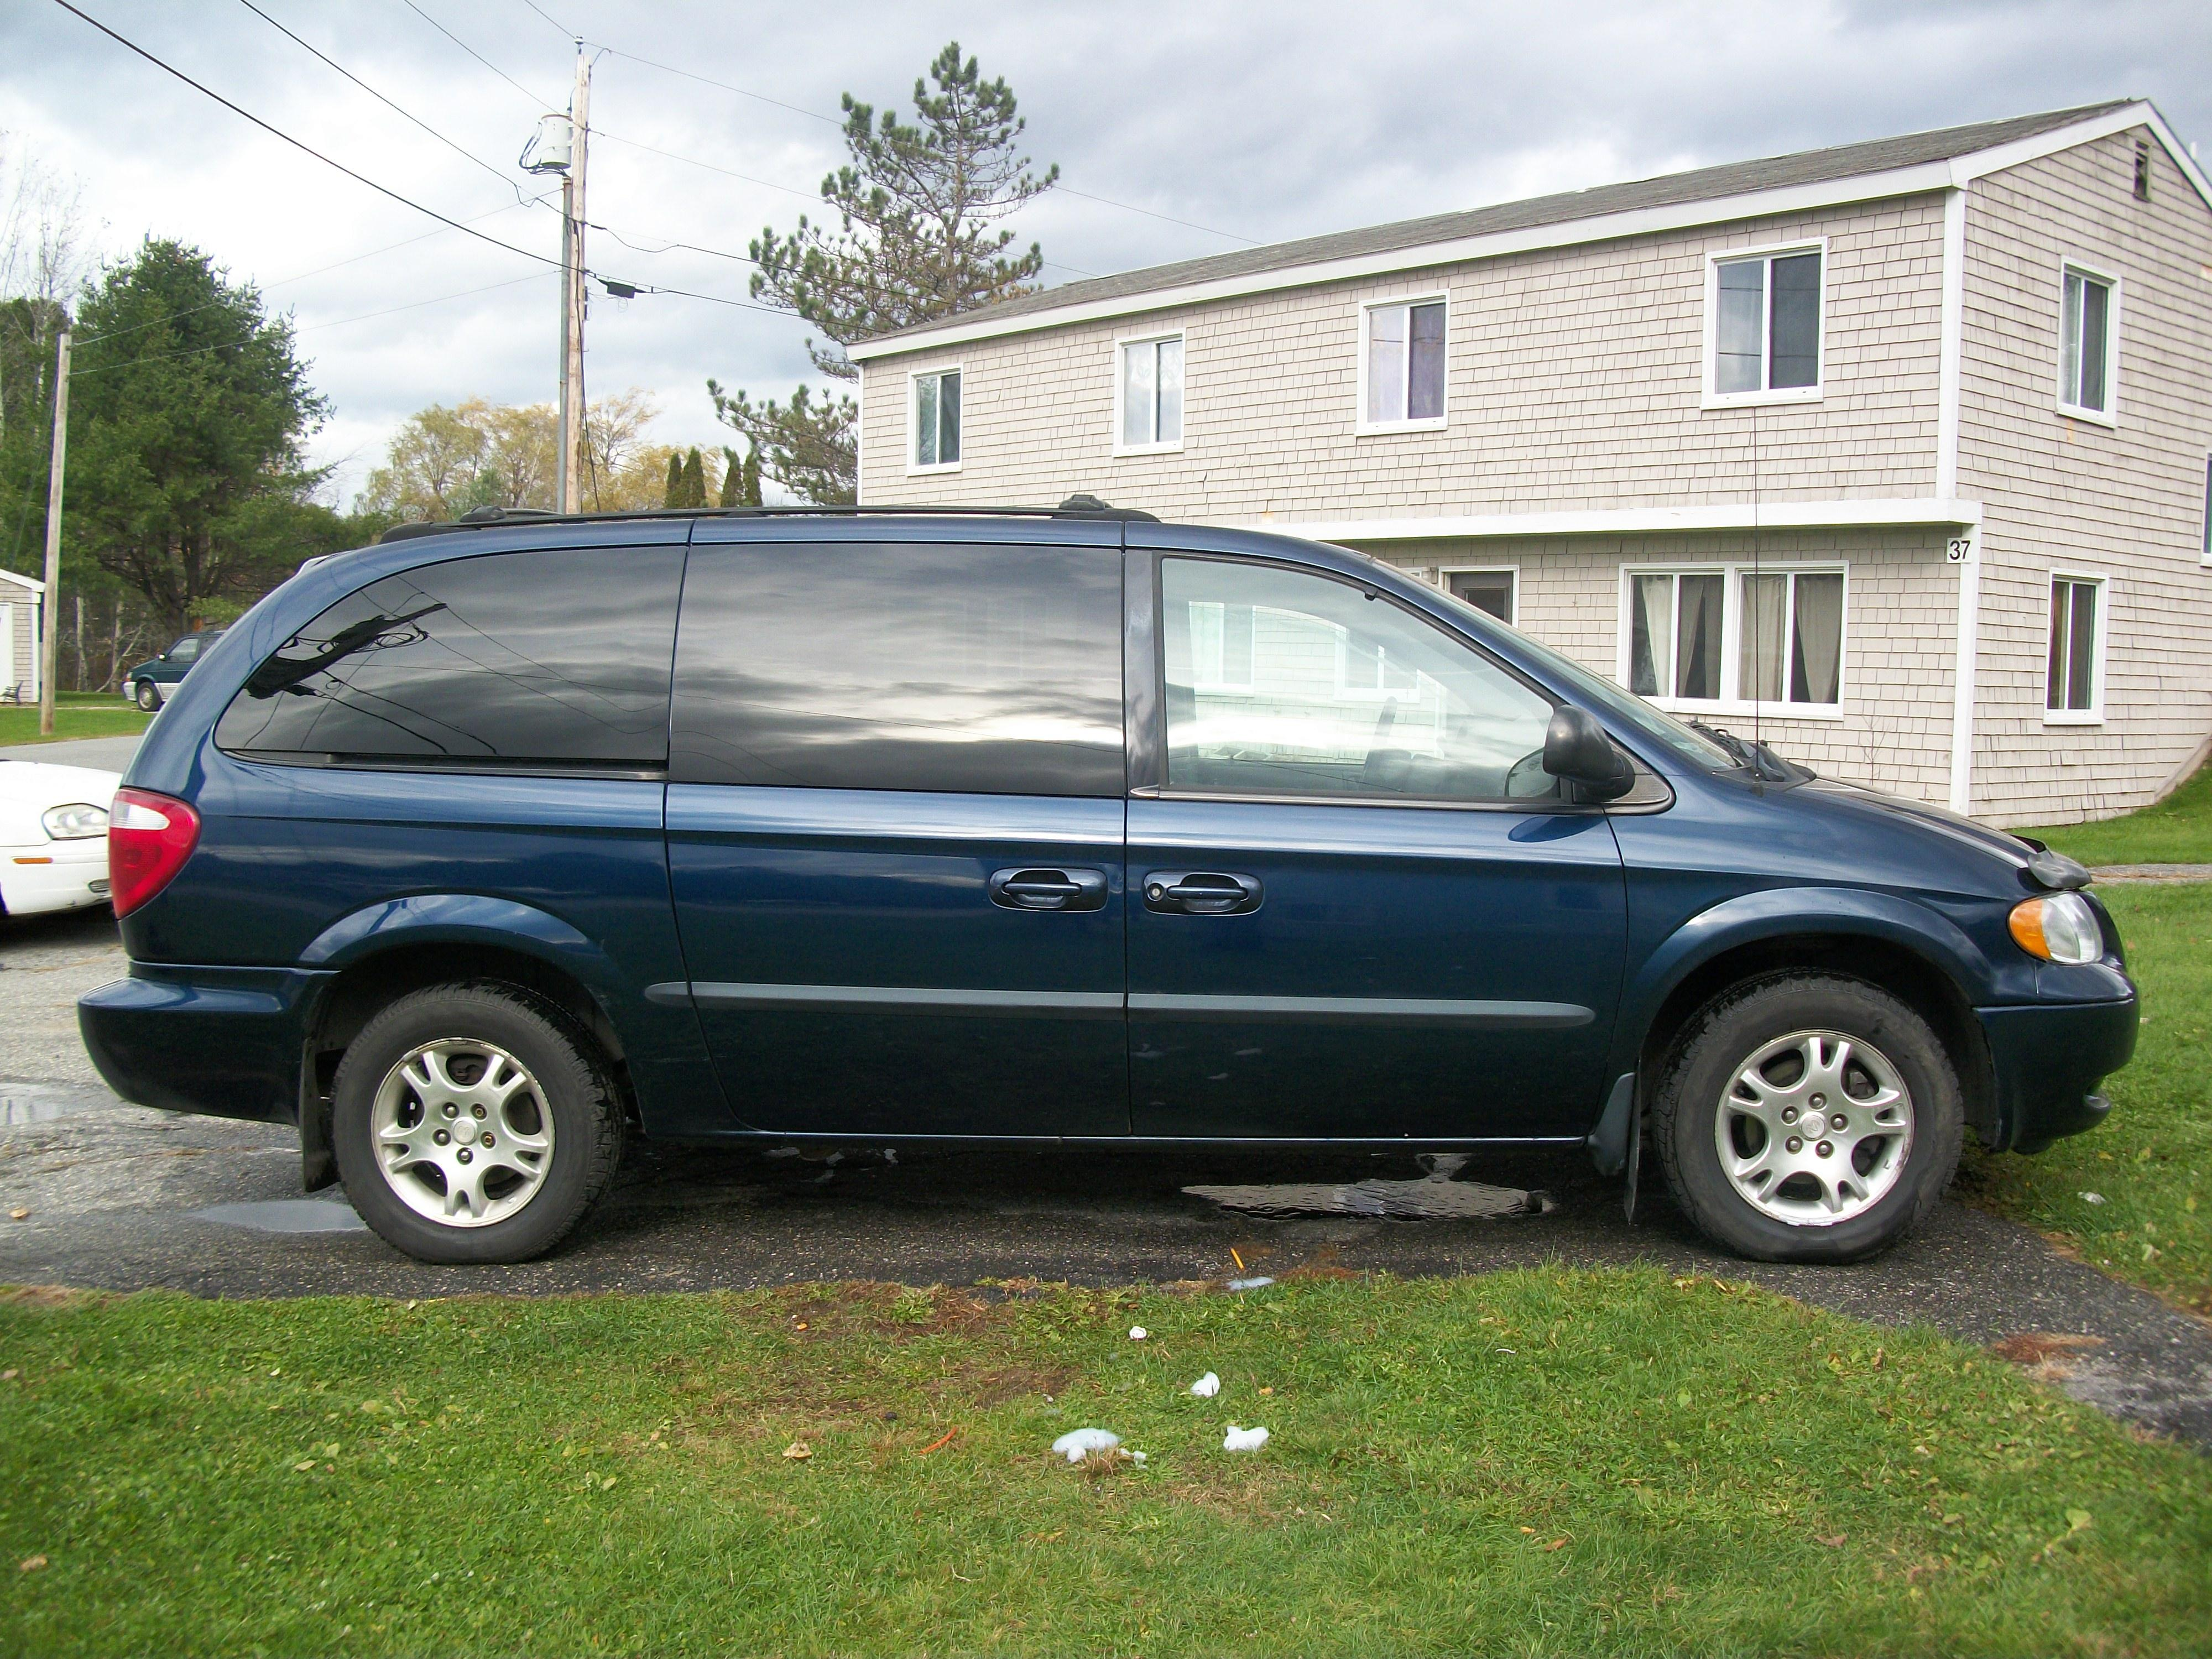 TwistedTea's 2002 Dodge Grand Caravan Passenger